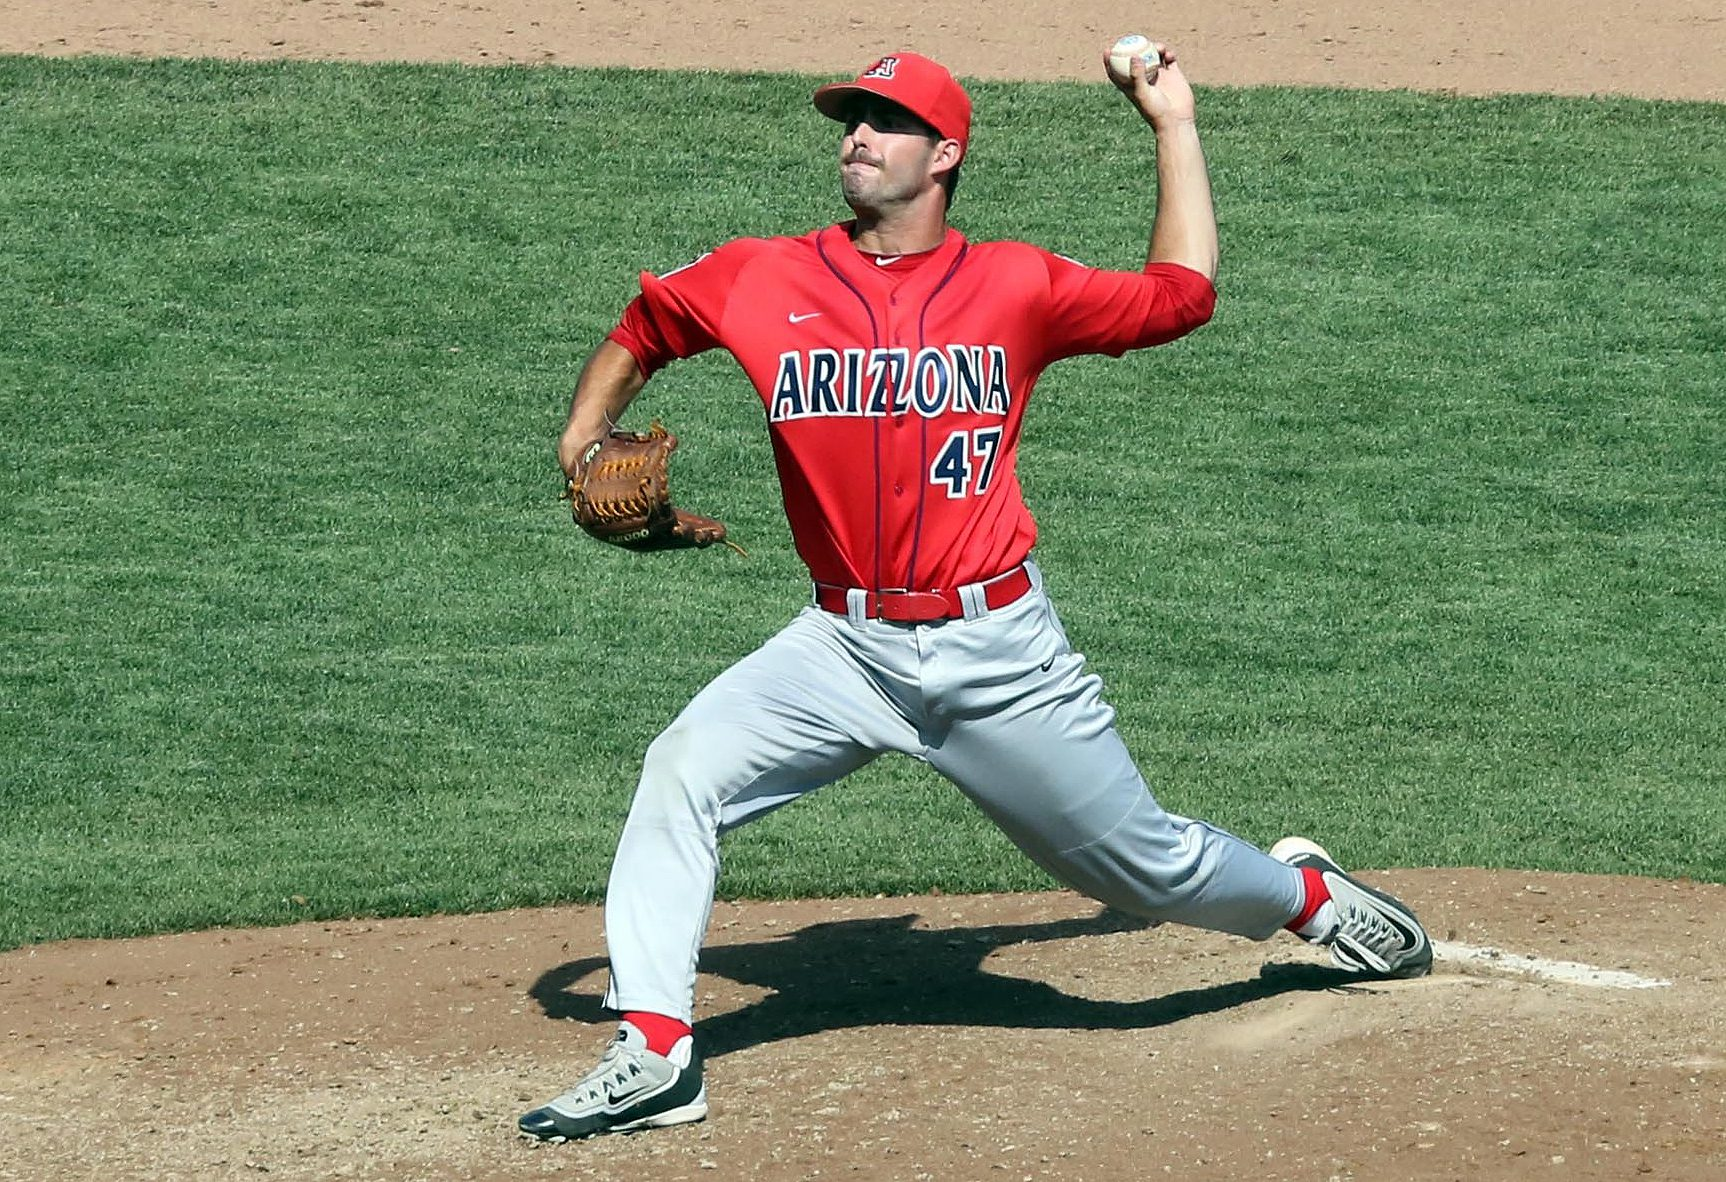 Arizona lefthander Cameron Ming was superb in his fourth appearance in Omaha (Eric Sorenson)